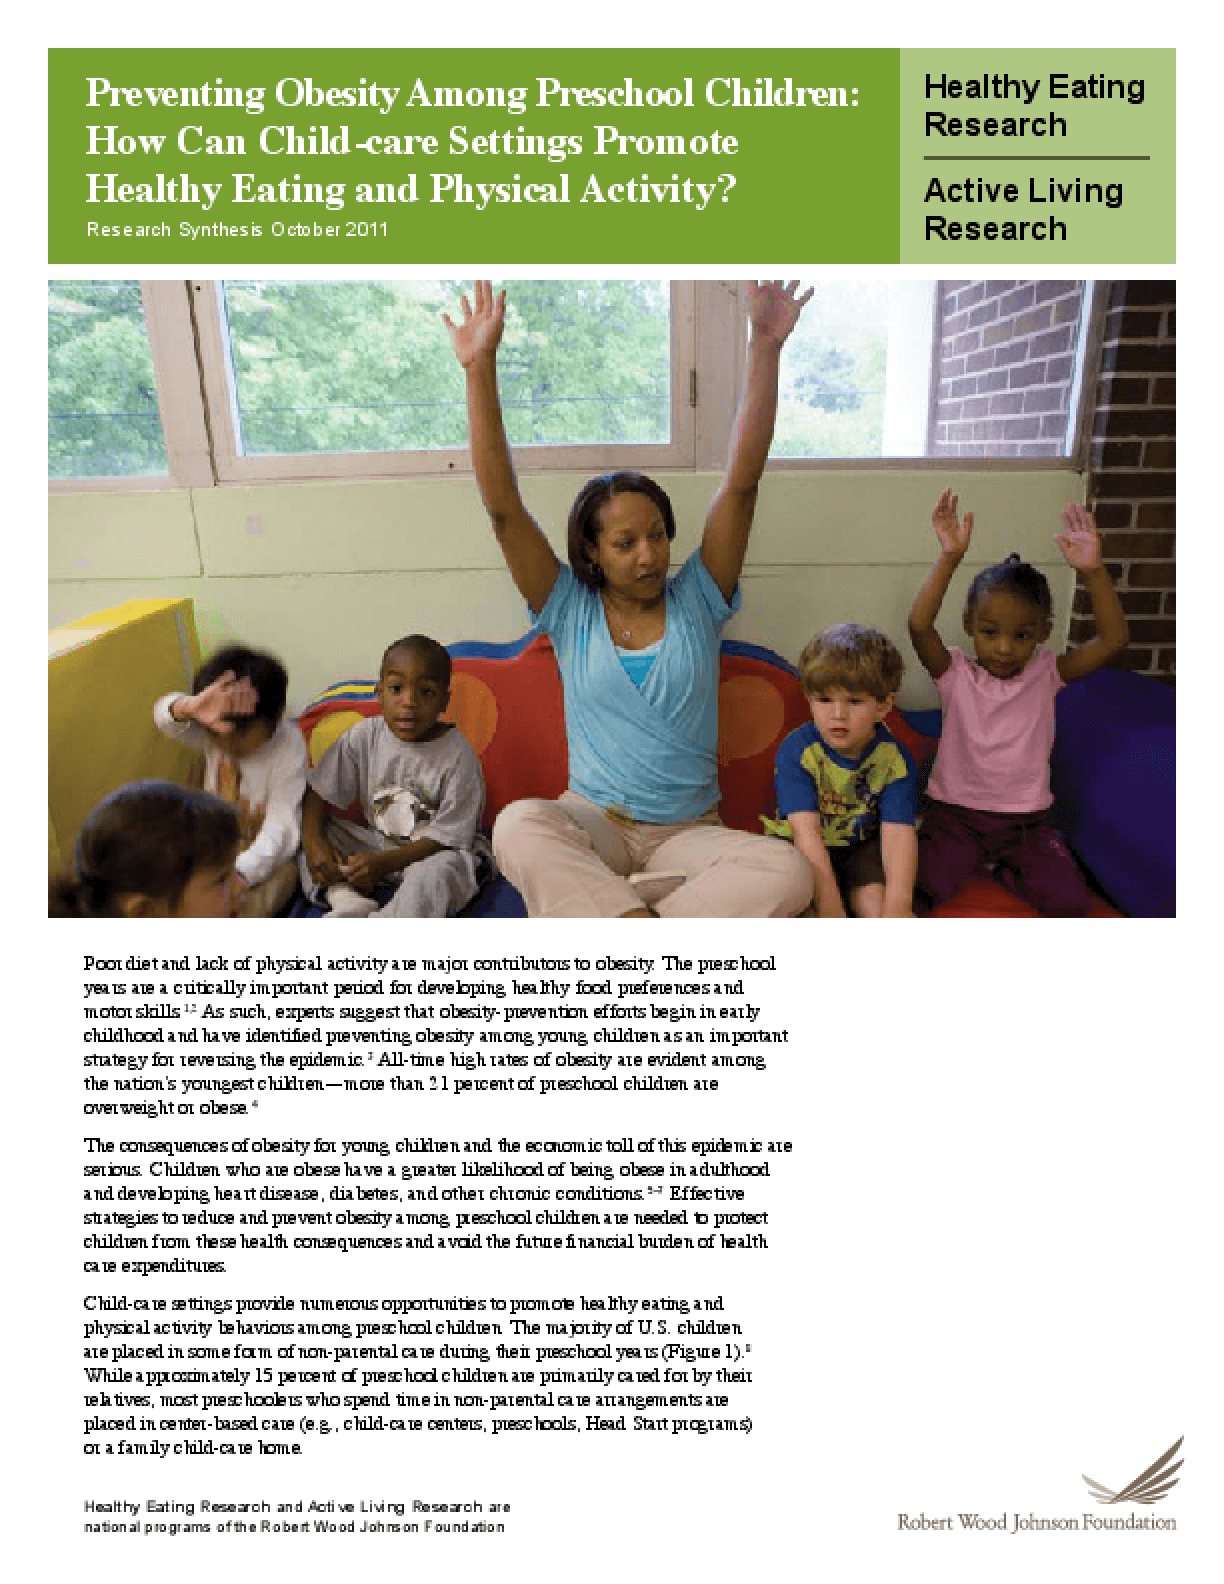 Preventing Obesity Among Preschool Children: How Can Child-Care Settings Promote Healthy Eating and Physical Activity?